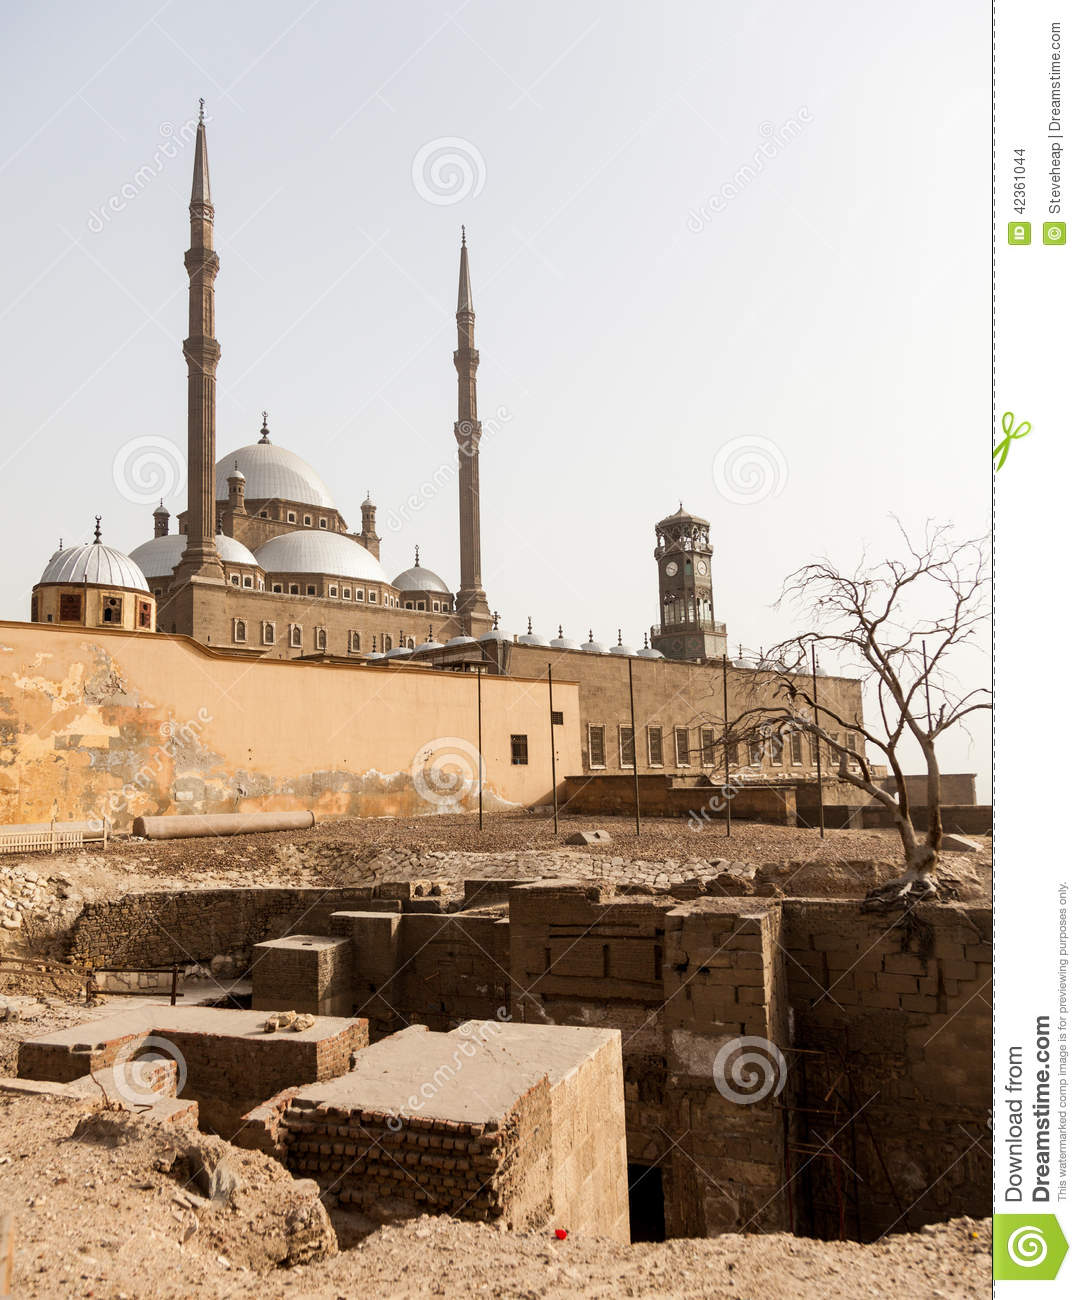 Download Alabaster Mosque Citadel Cairo Egypt Stock Photo - Image of historic, egypt: 42361044